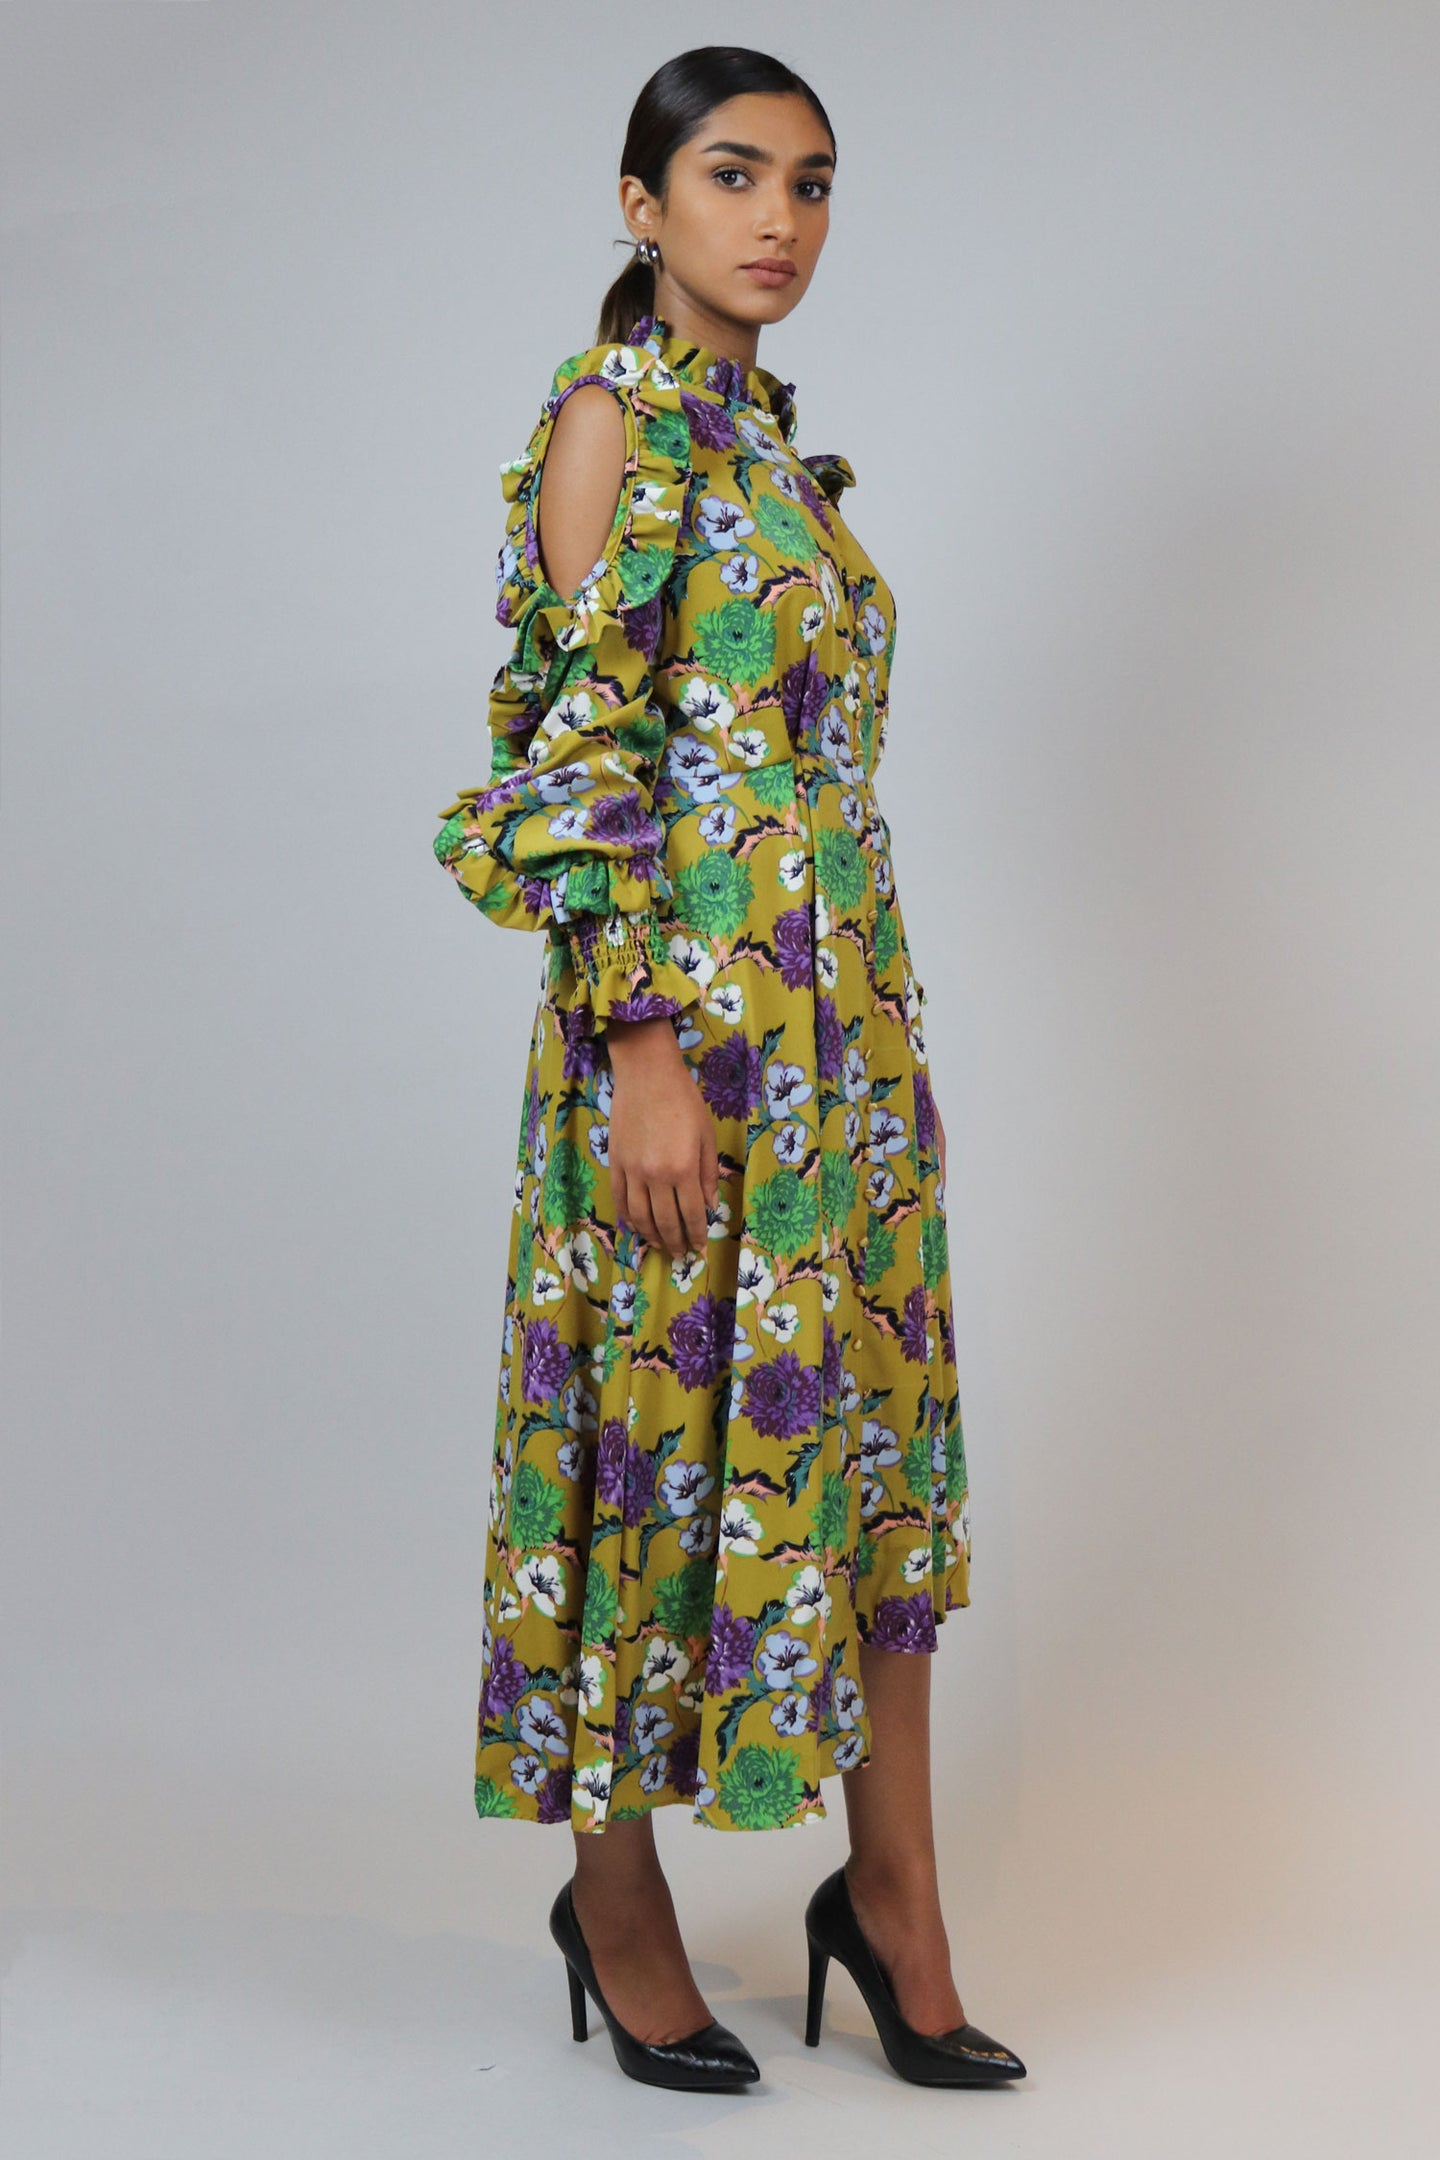 WANTS Shoulder Cutout Floral Midi Dress